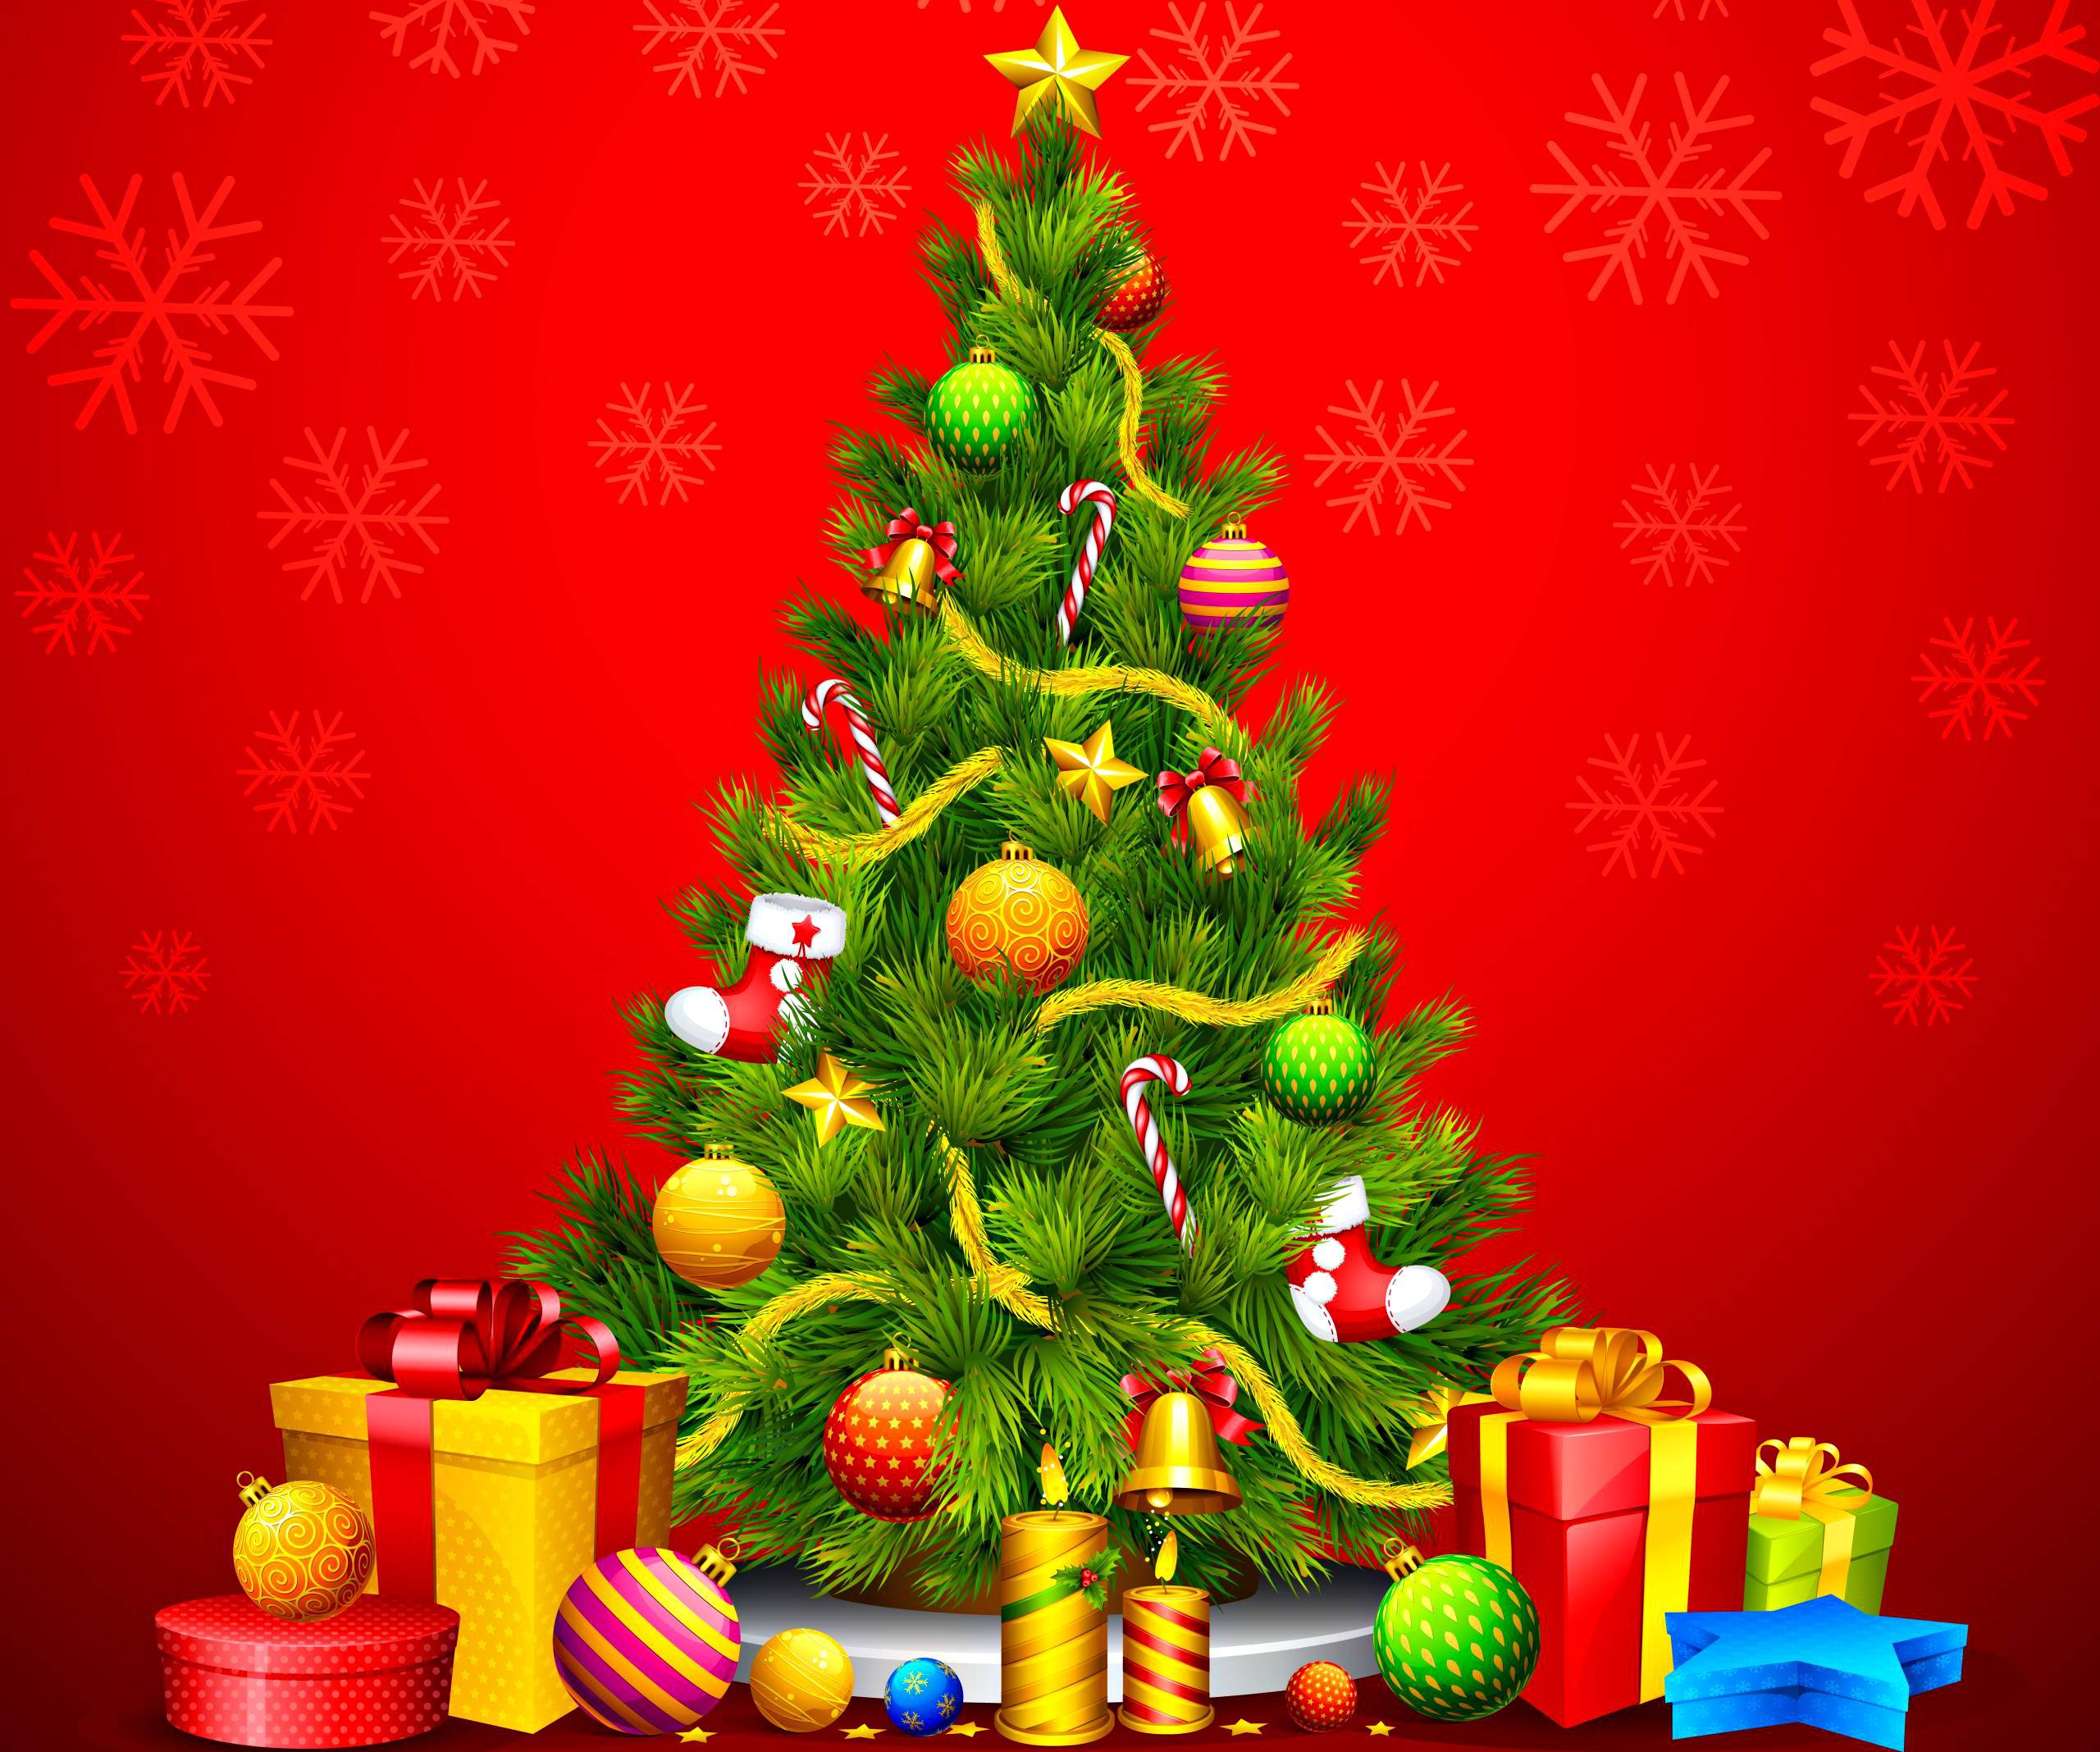 Christmas Tree Backgrounds.Christmas Tree Wallpaper Backgrounds Wallpaper Cave